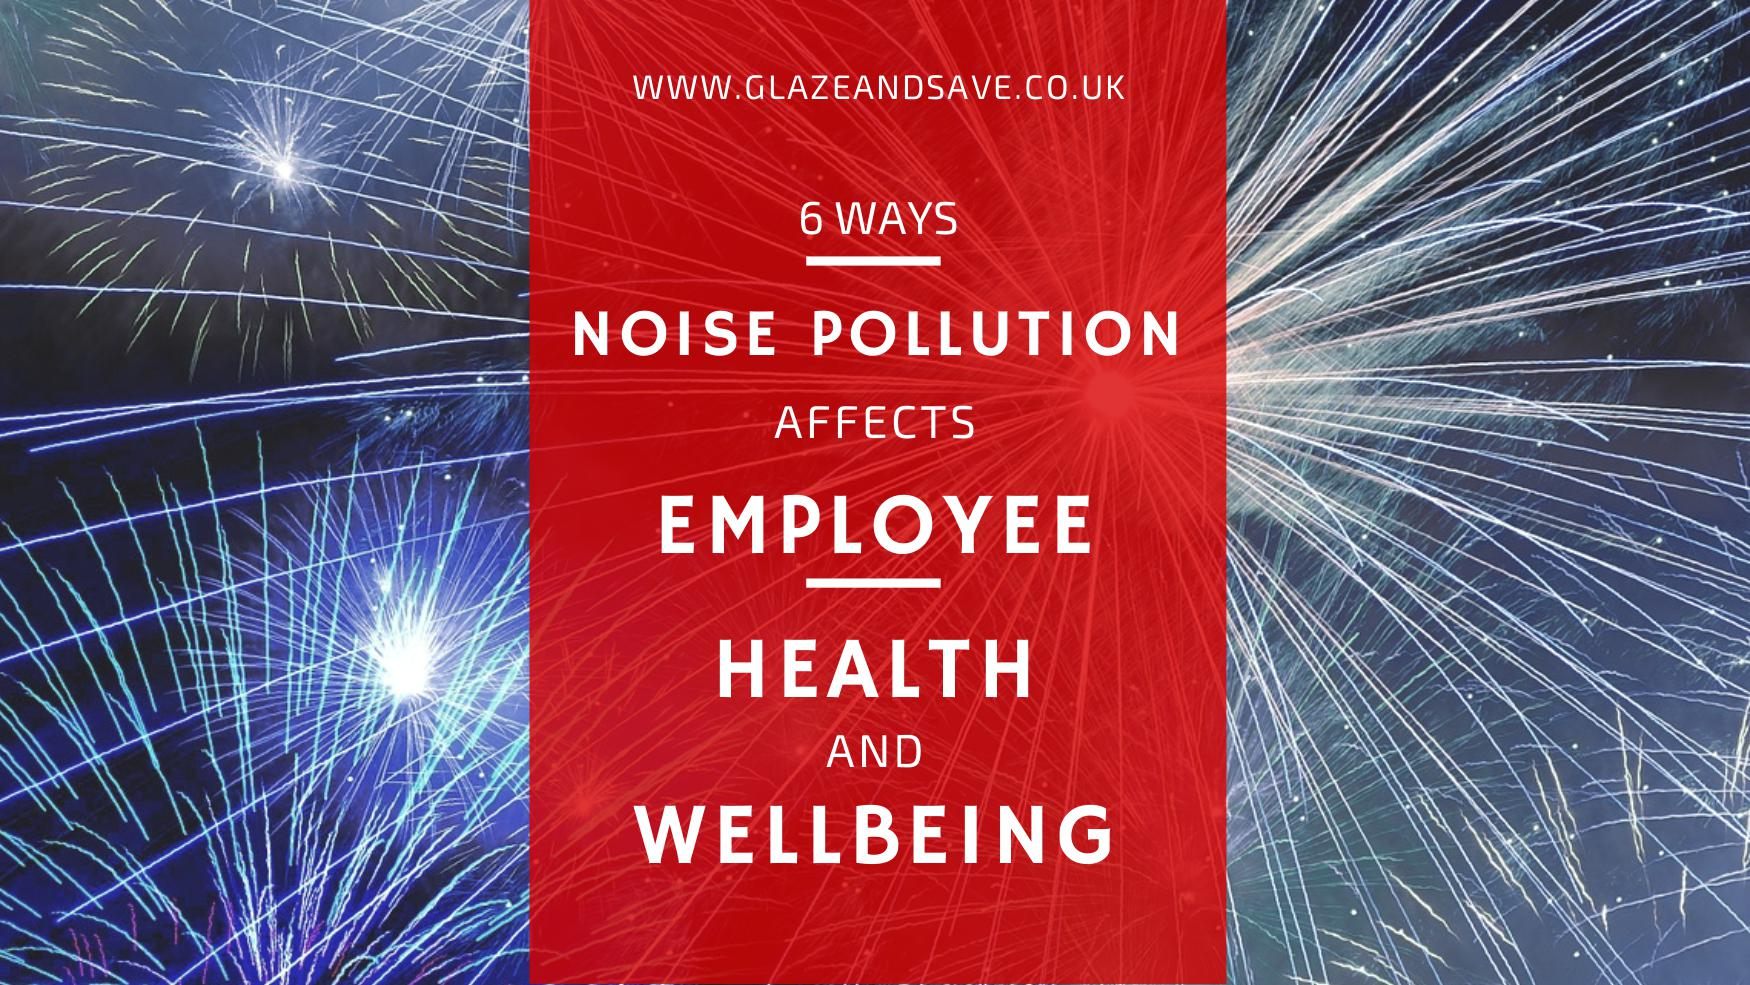 Six ways noise pollution affects employee health and wellbeing